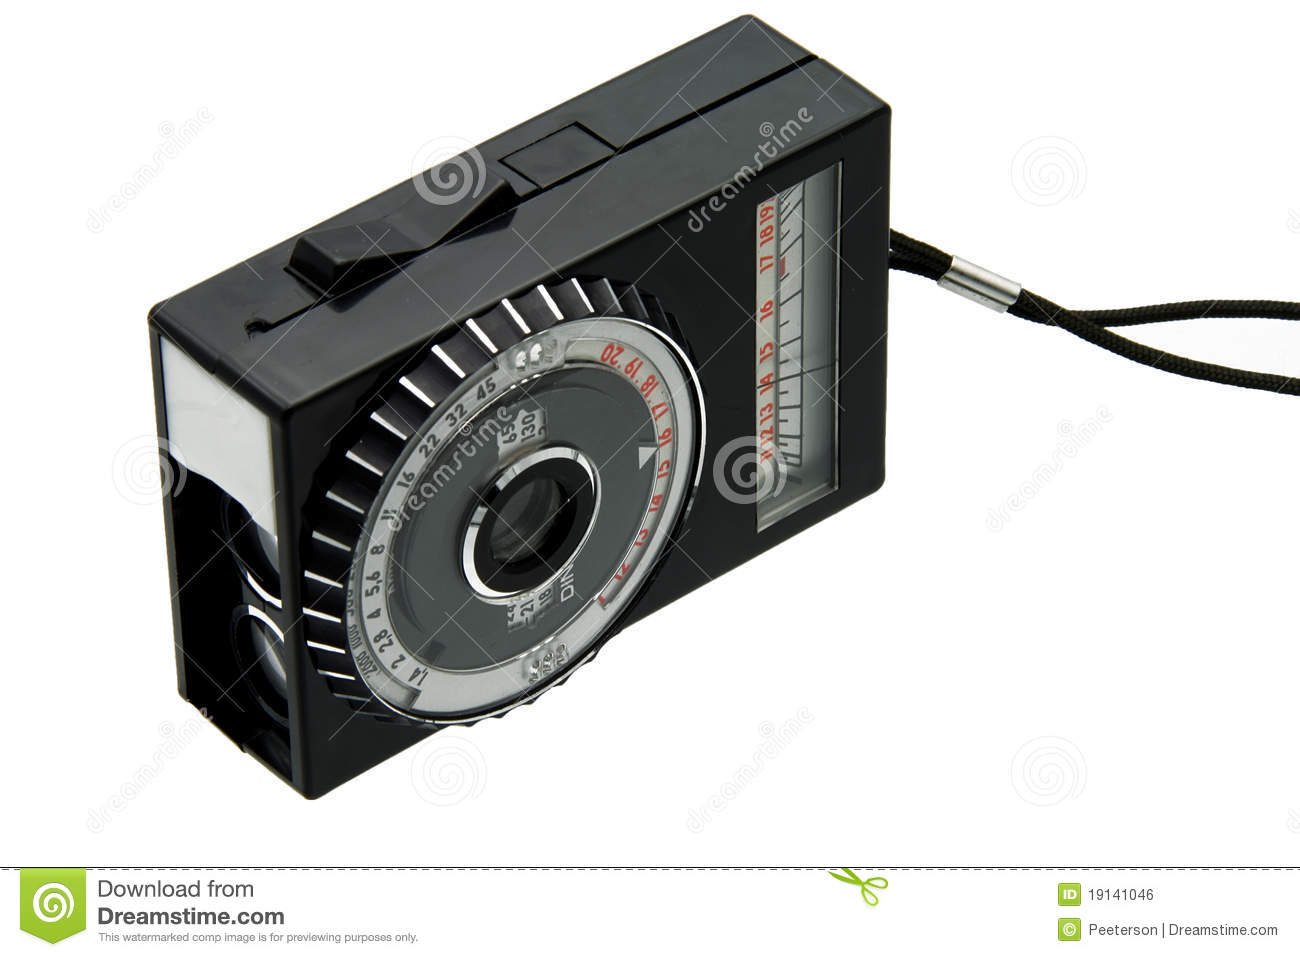 Old light meter stock photo  Image of retro, gauge, exposure